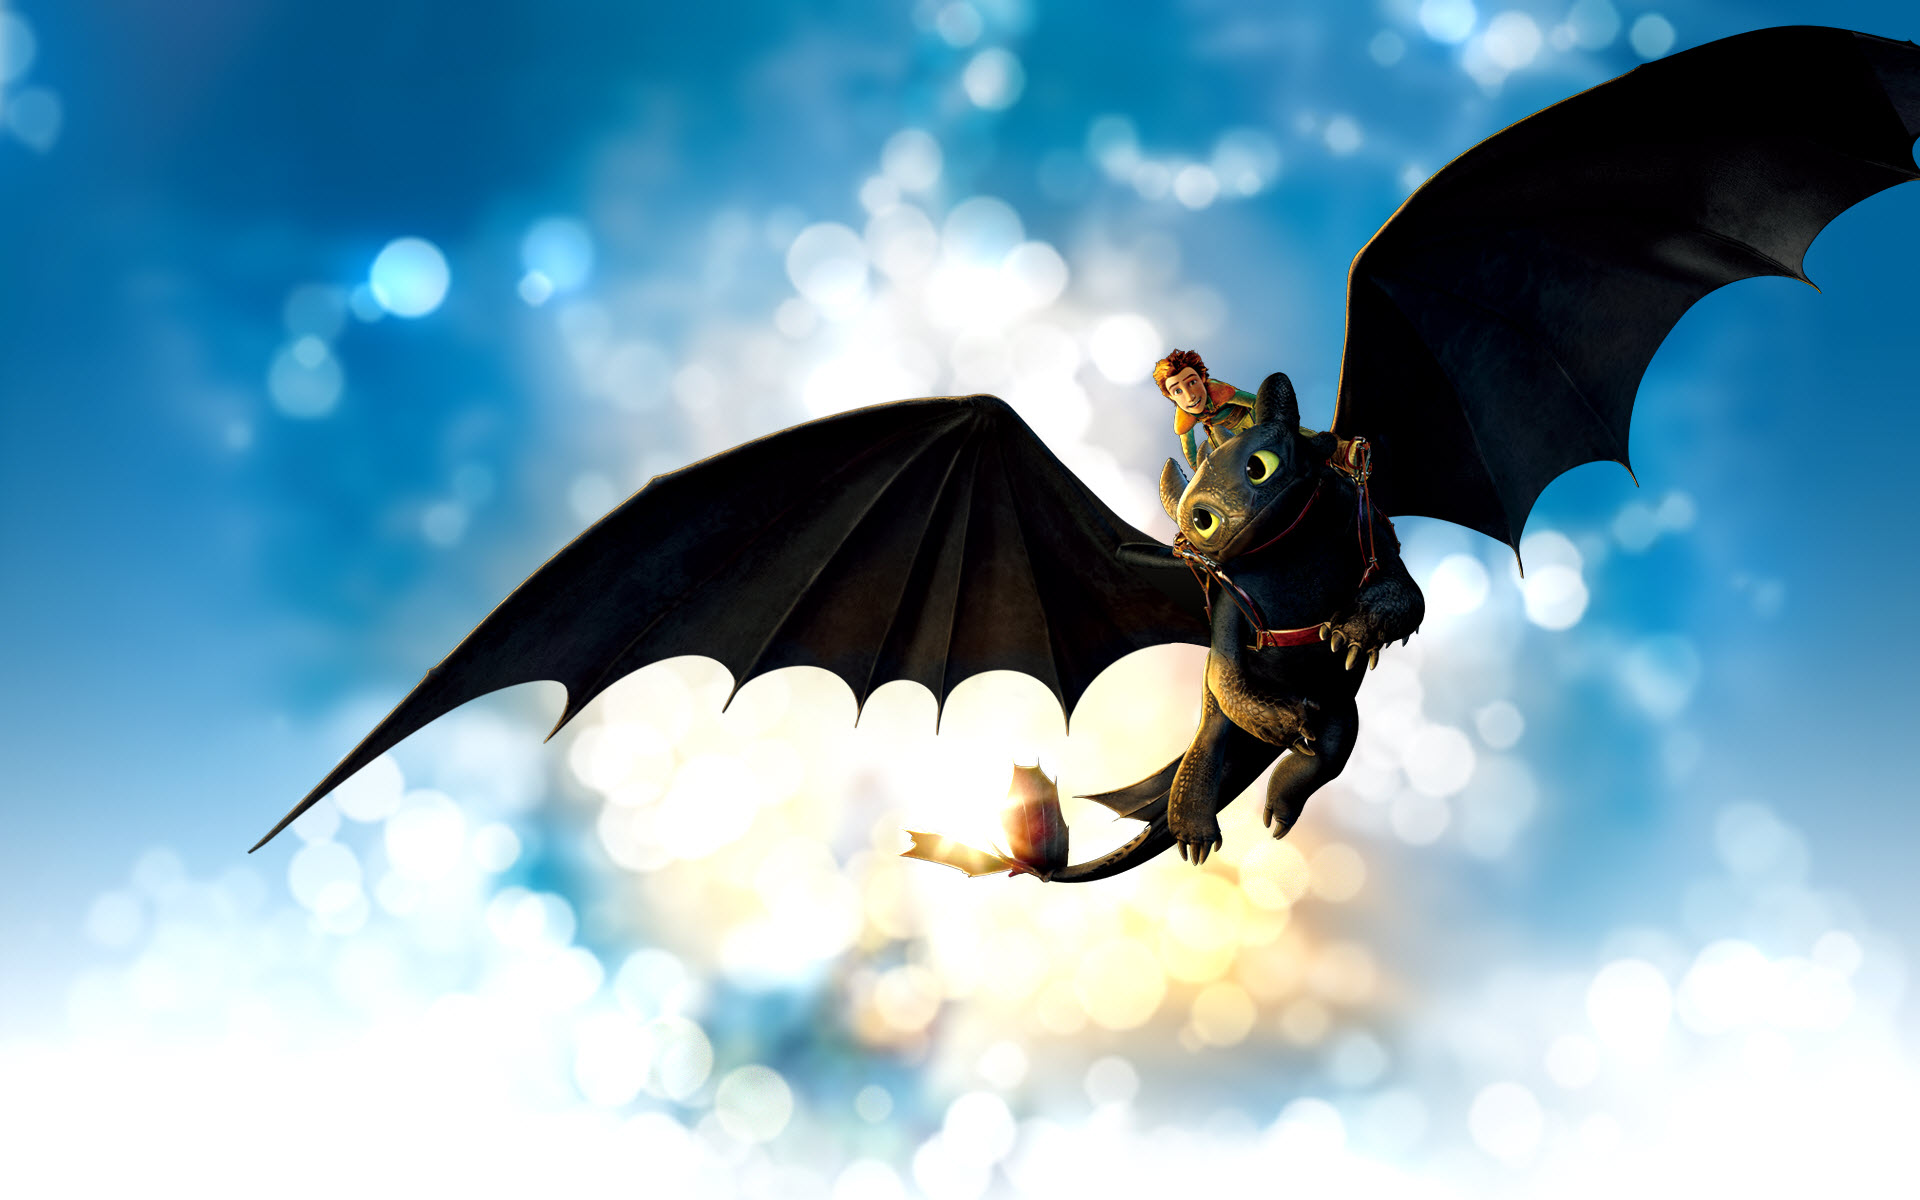 small dragons in how to train your dragon